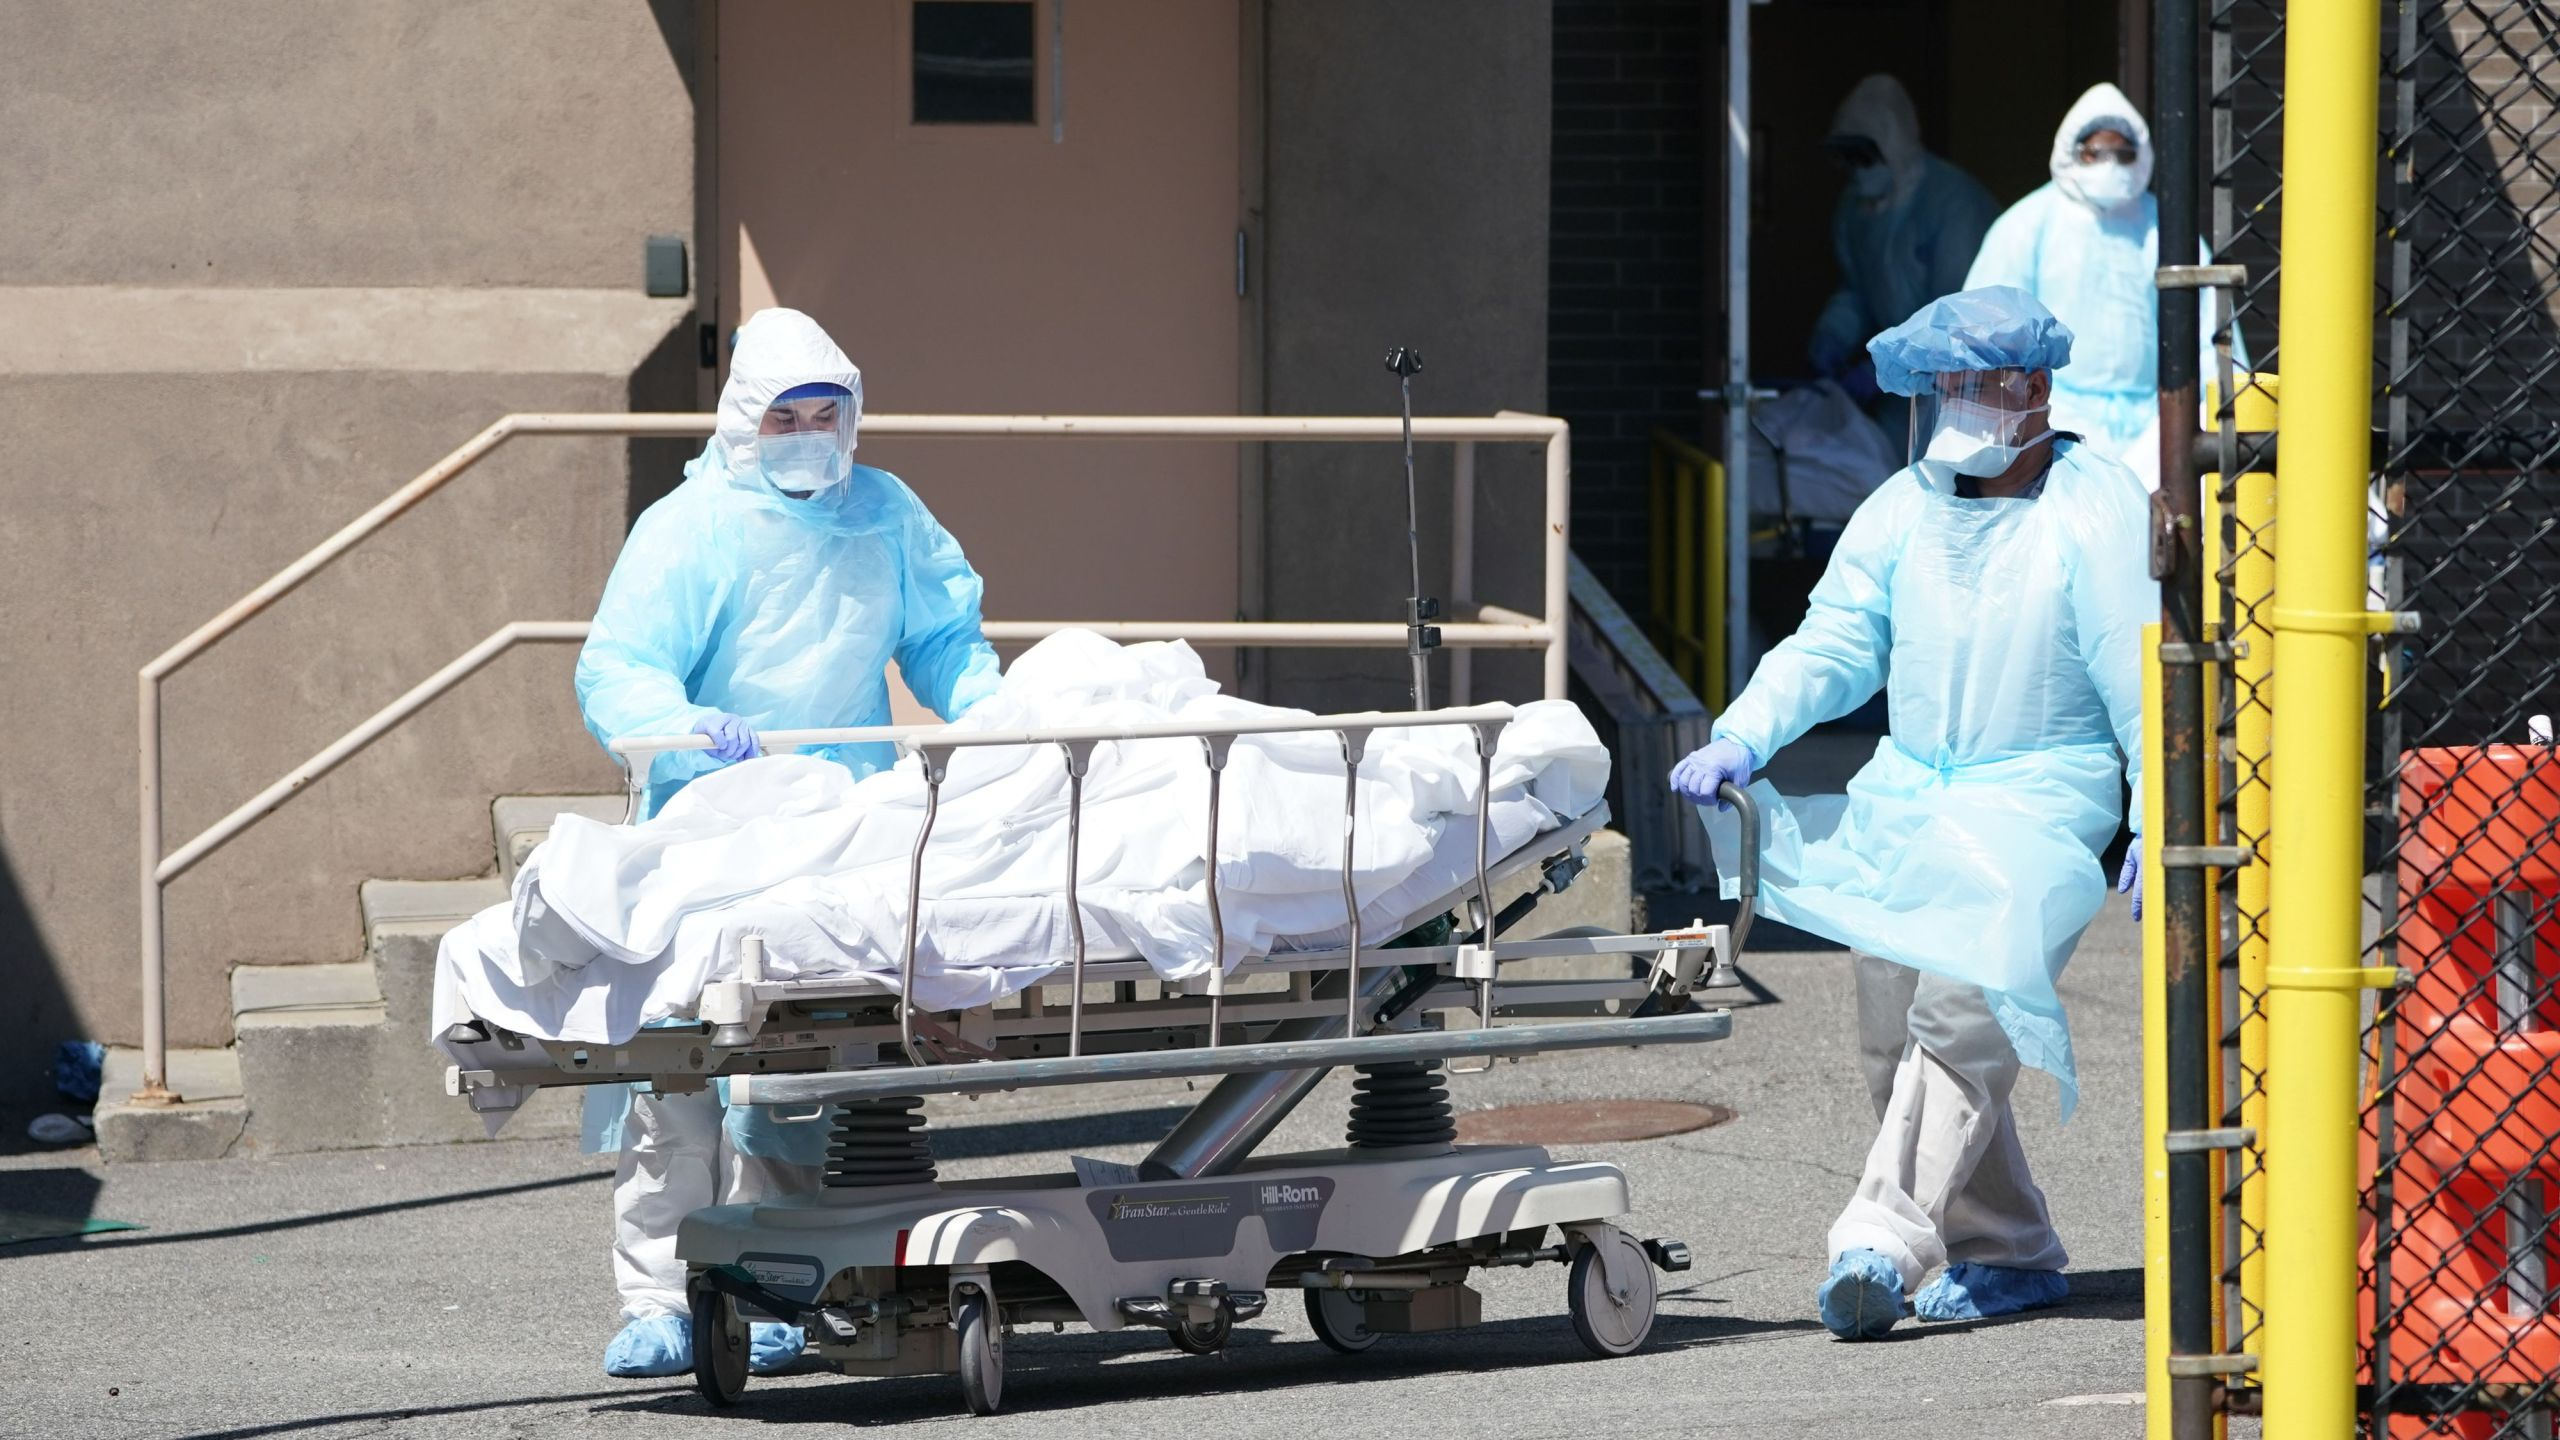 Bodies are moved to a refrigeration truck serving as a temporary morgue at Wyckoff Hospital in the Borough of Brooklyn on April 6, 2020. (BRYAN R. SMITH/AFP via Getty Images)